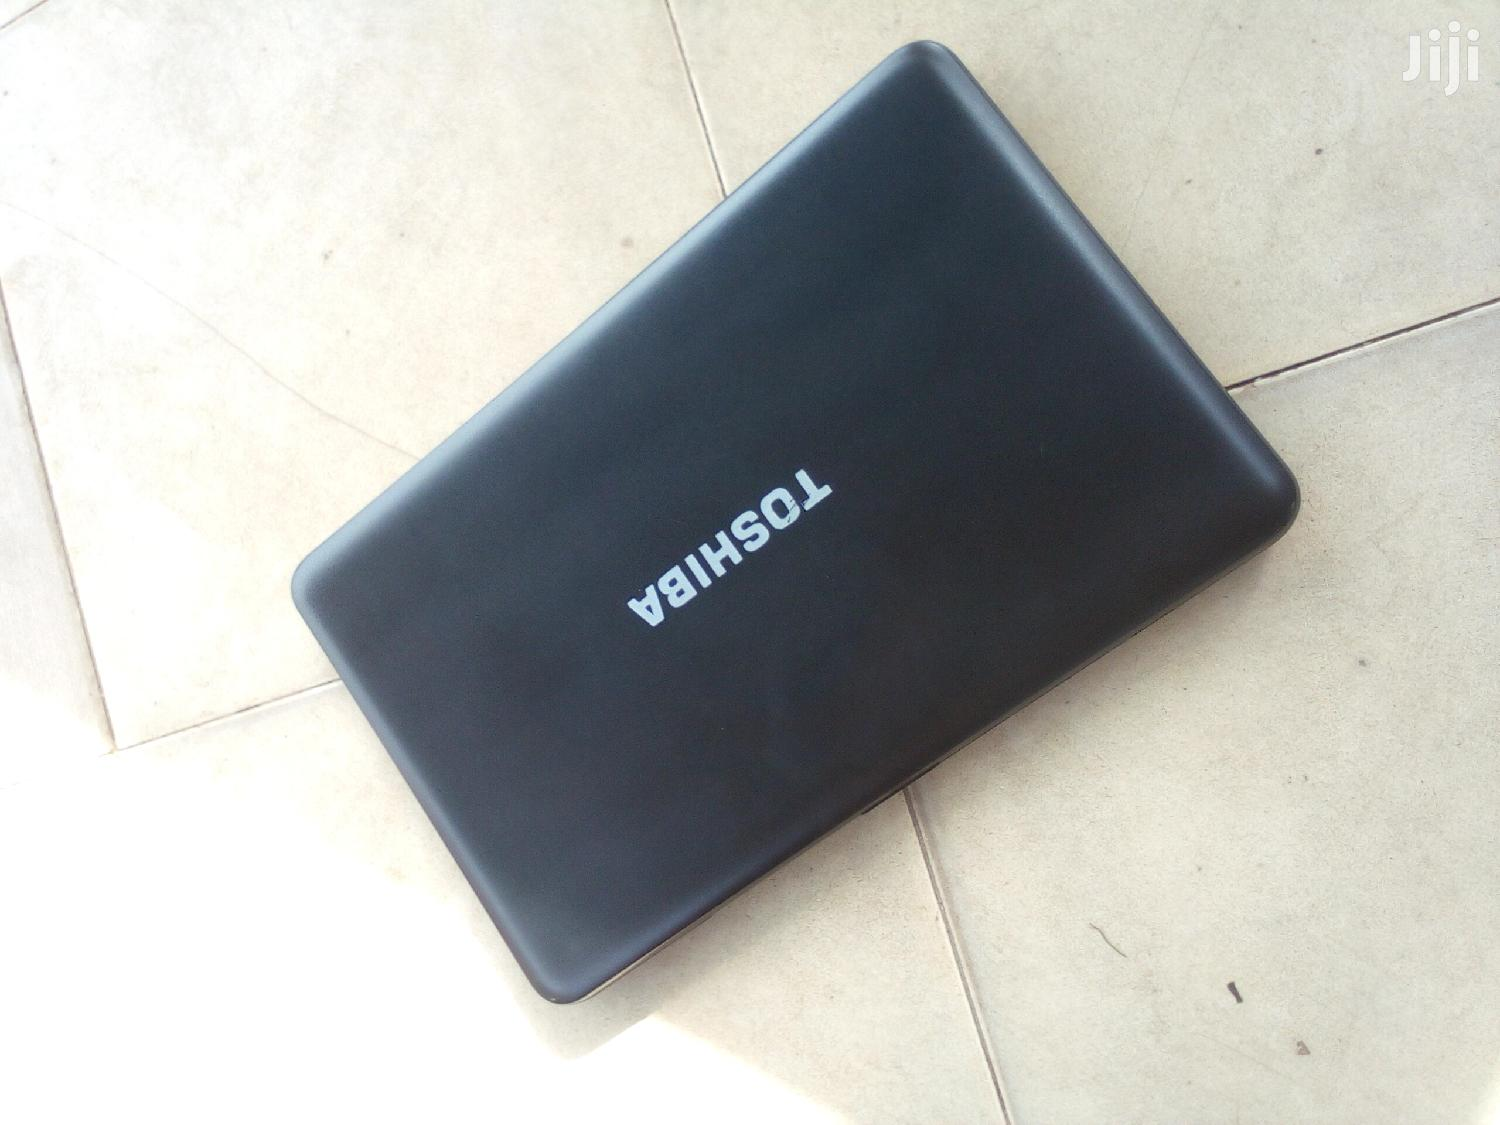 Laptop Toshiba Satellite C855 4GB Intel HDD 500GB | Laptops & Computers for sale in Teshie-Nungua Estates, Greater Accra, Ghana